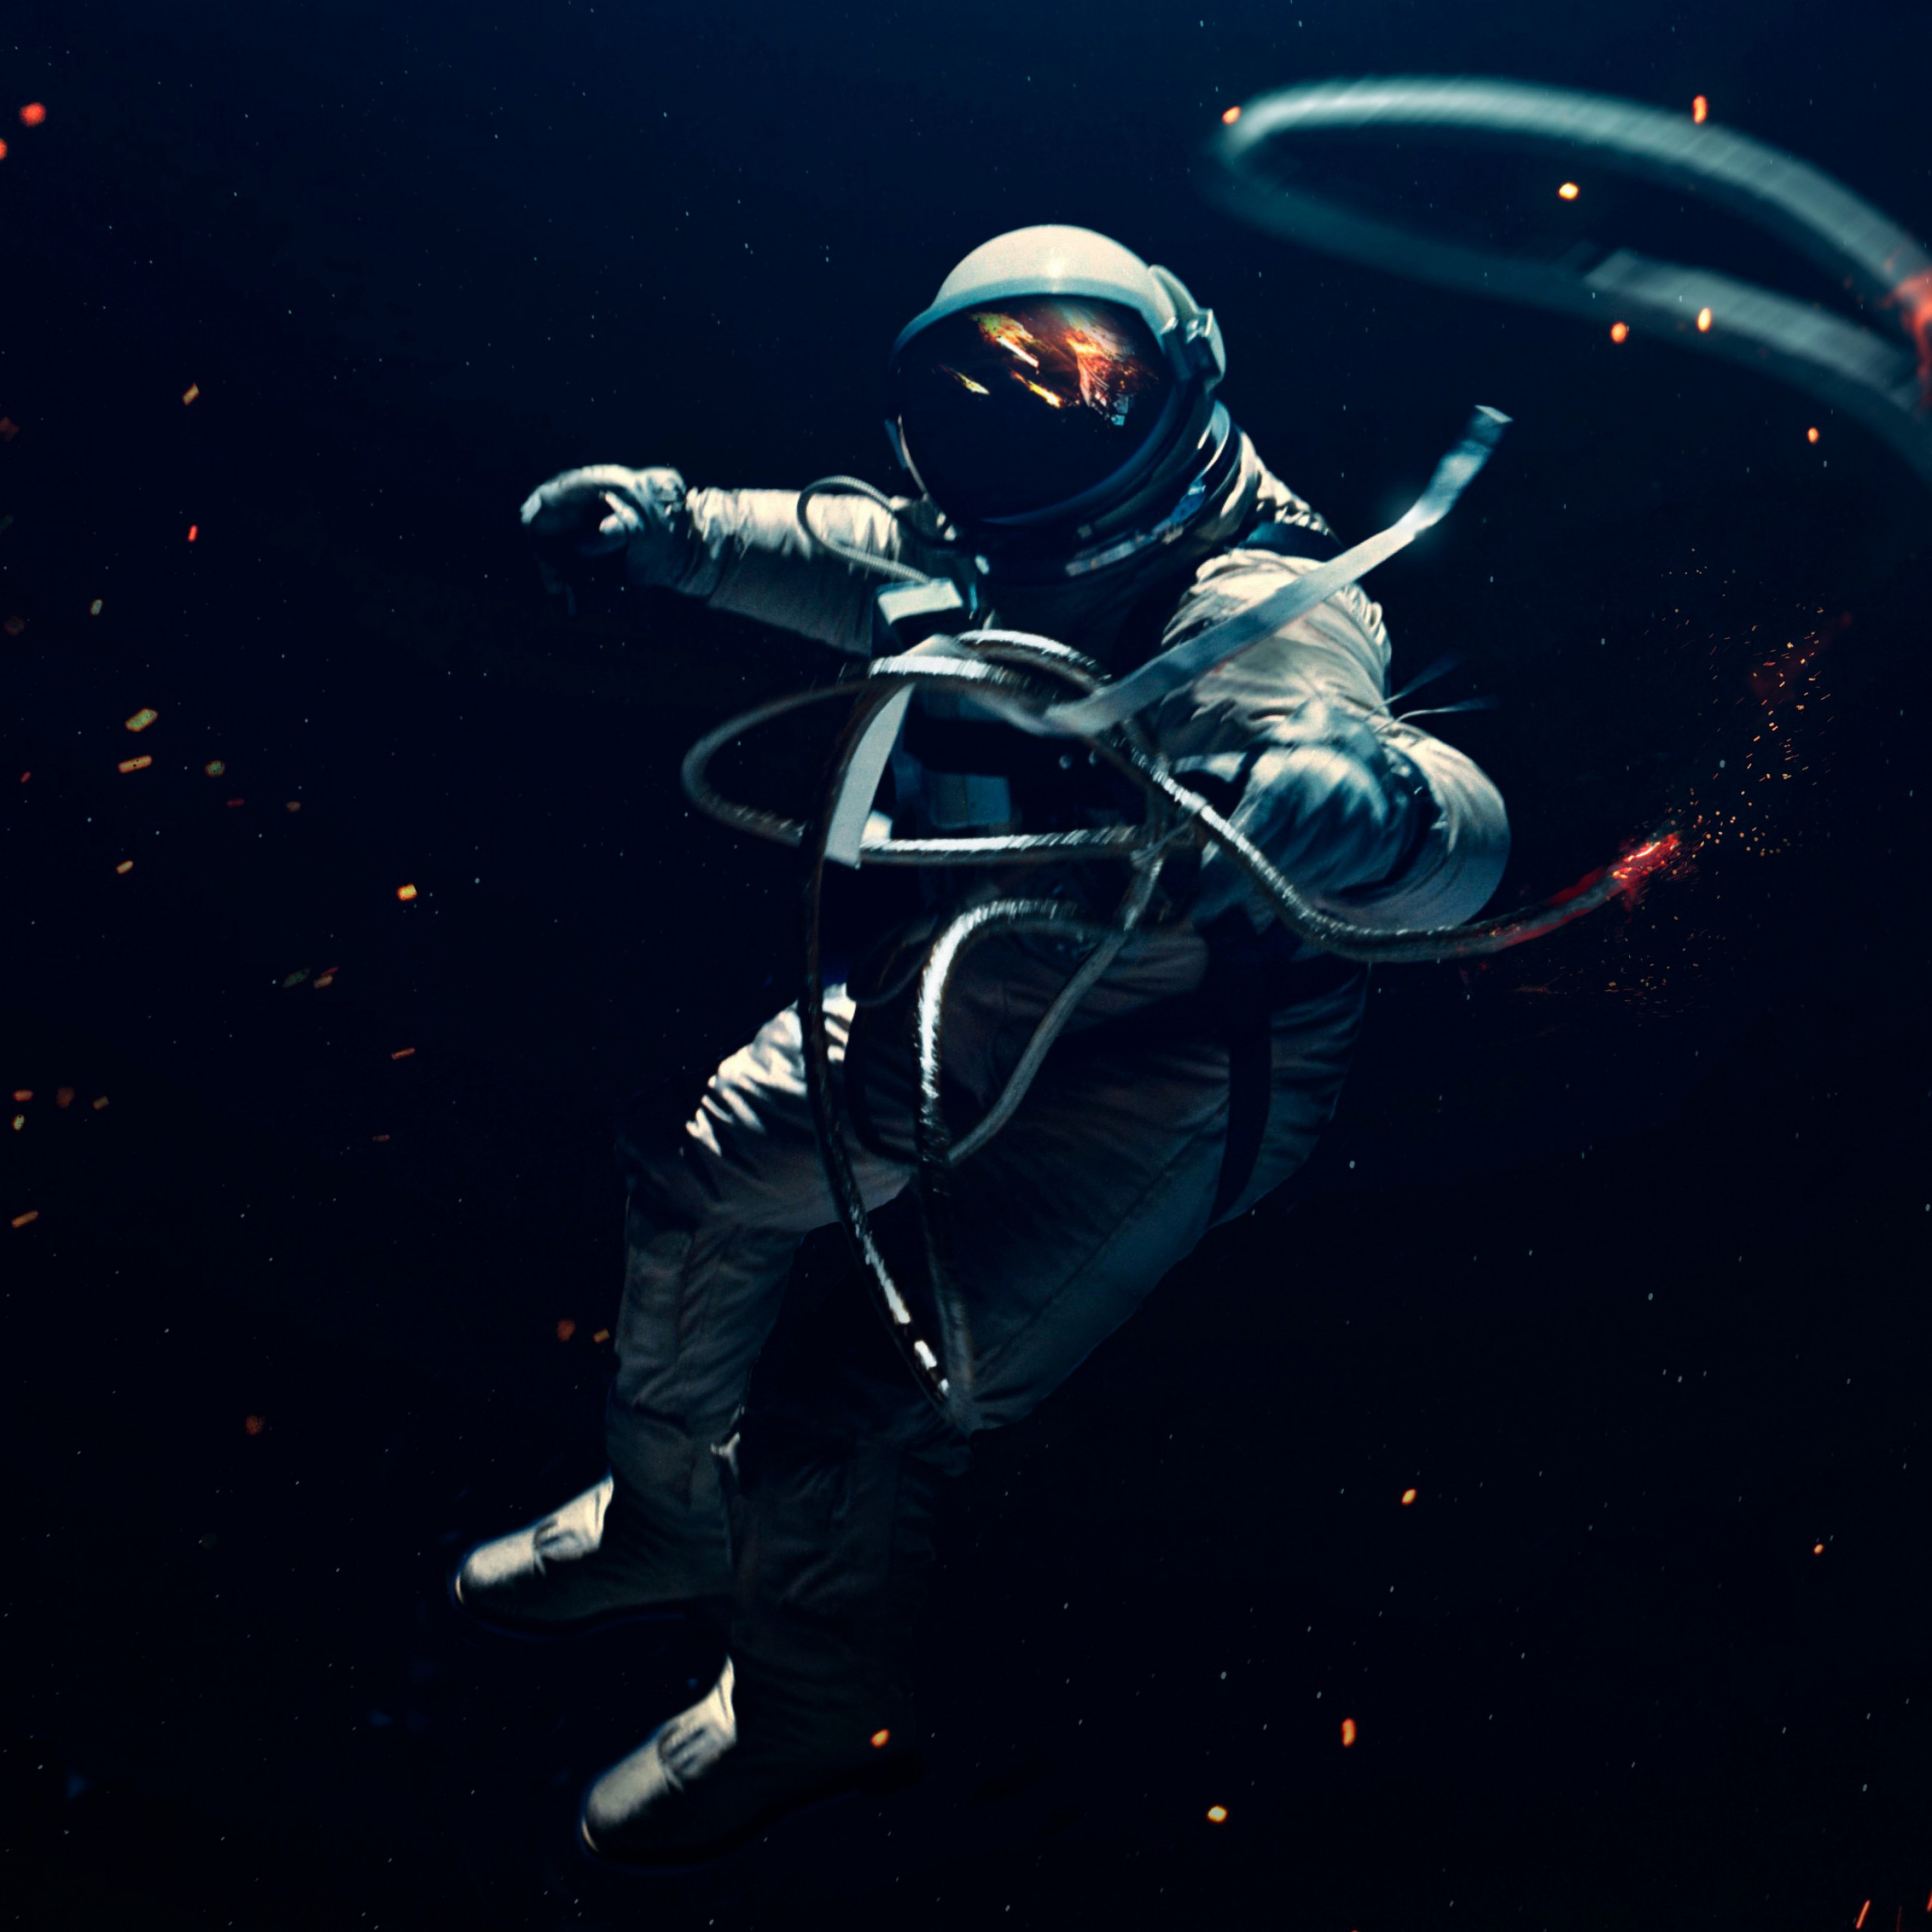 astronaut space suit dark background lost in space space 2732x2732 2460